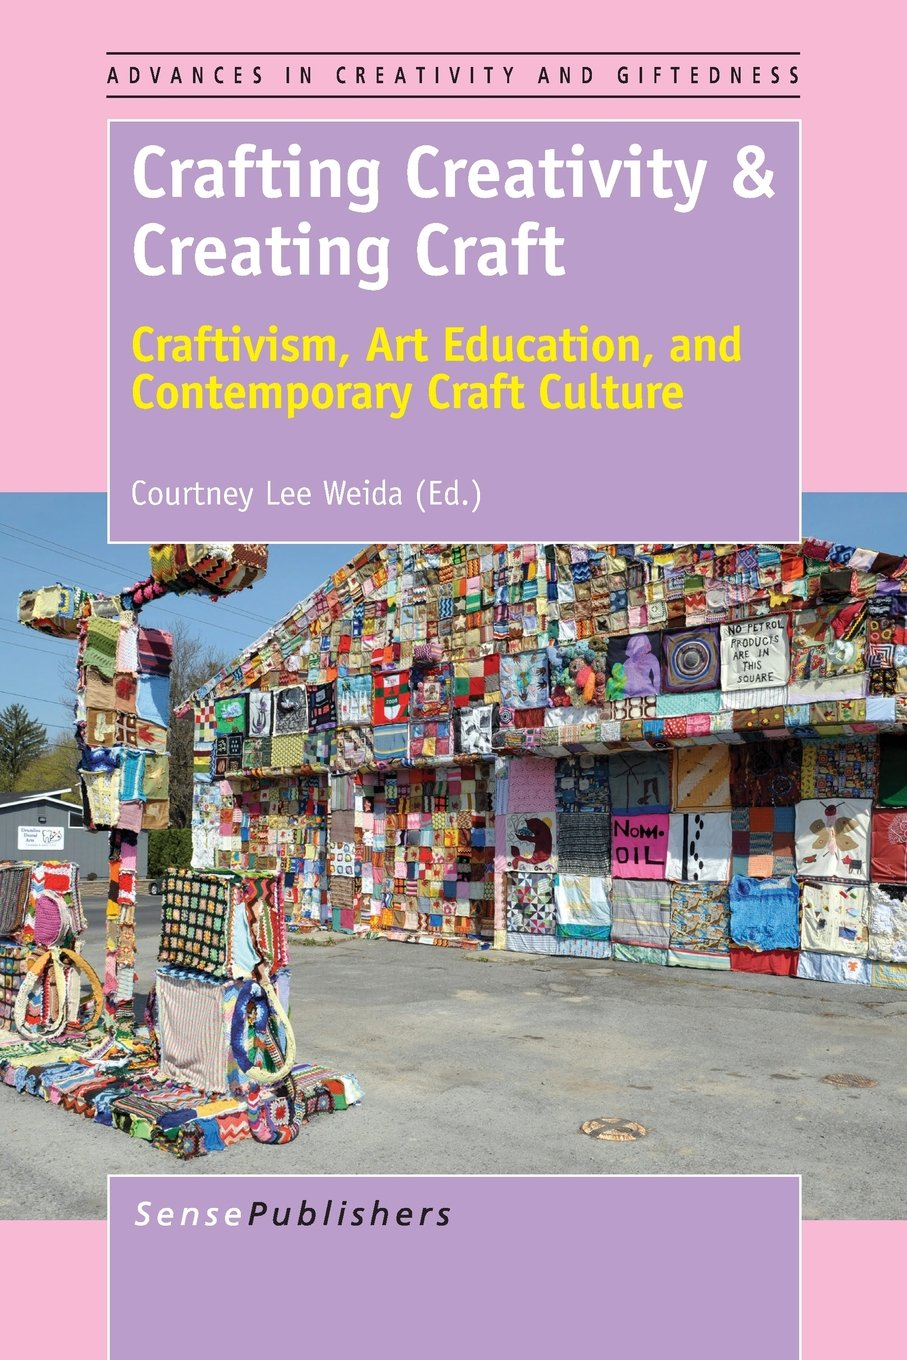 Download Crafting Creativity & Creating Craft: Craftivism, Art Education, and Contemporary Craft Culture (Advances in Creativity and Giftedness) PDF